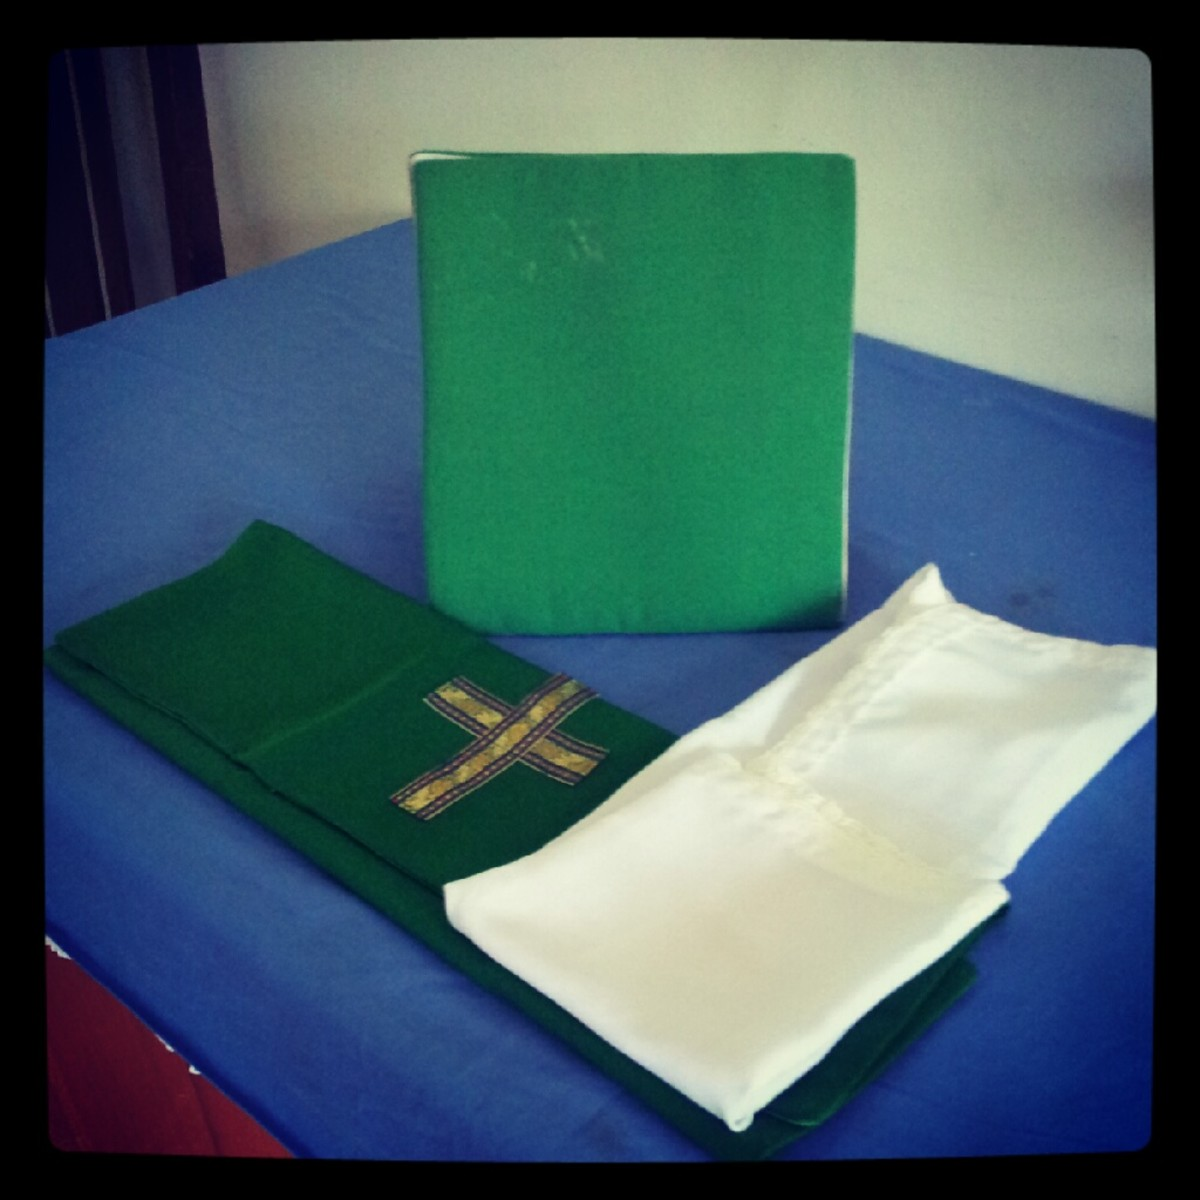 The Burse (placed standing), the Veil (green) and the Corporal (Square piece of cloth)